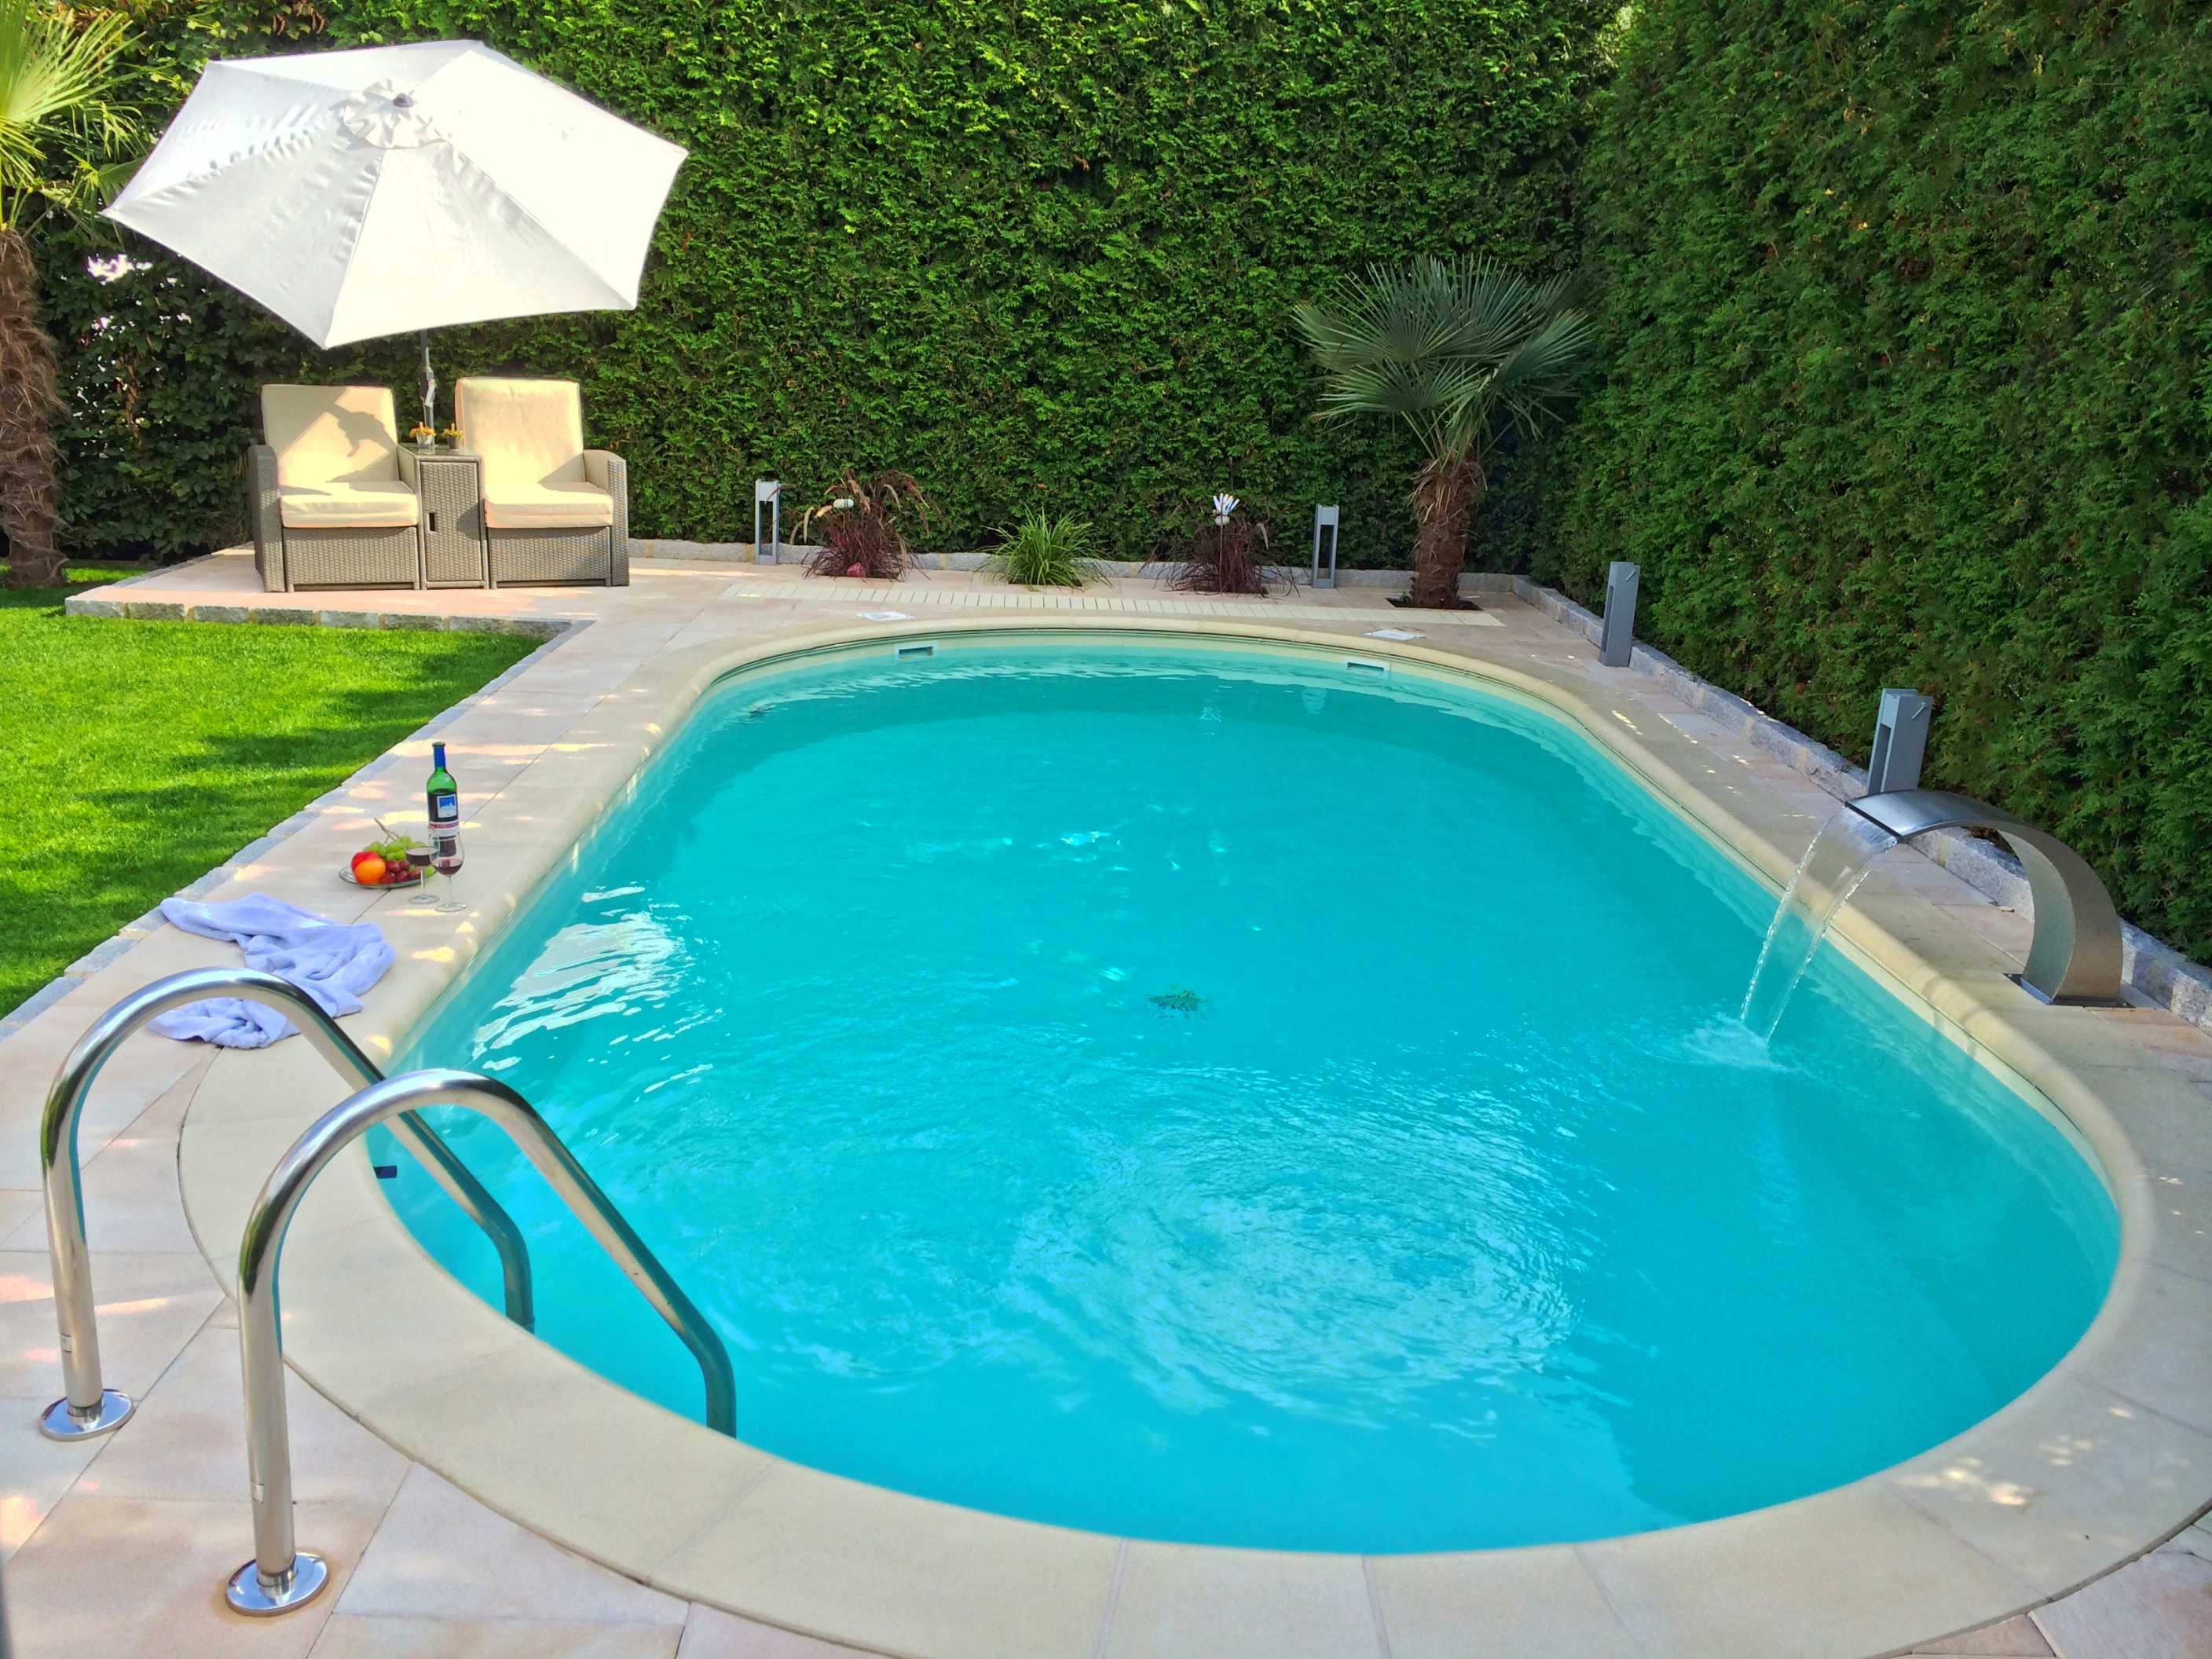 Pool Garten Aufstellbar Pool Im Garten Eingraben Choosing The Perfect Pool From